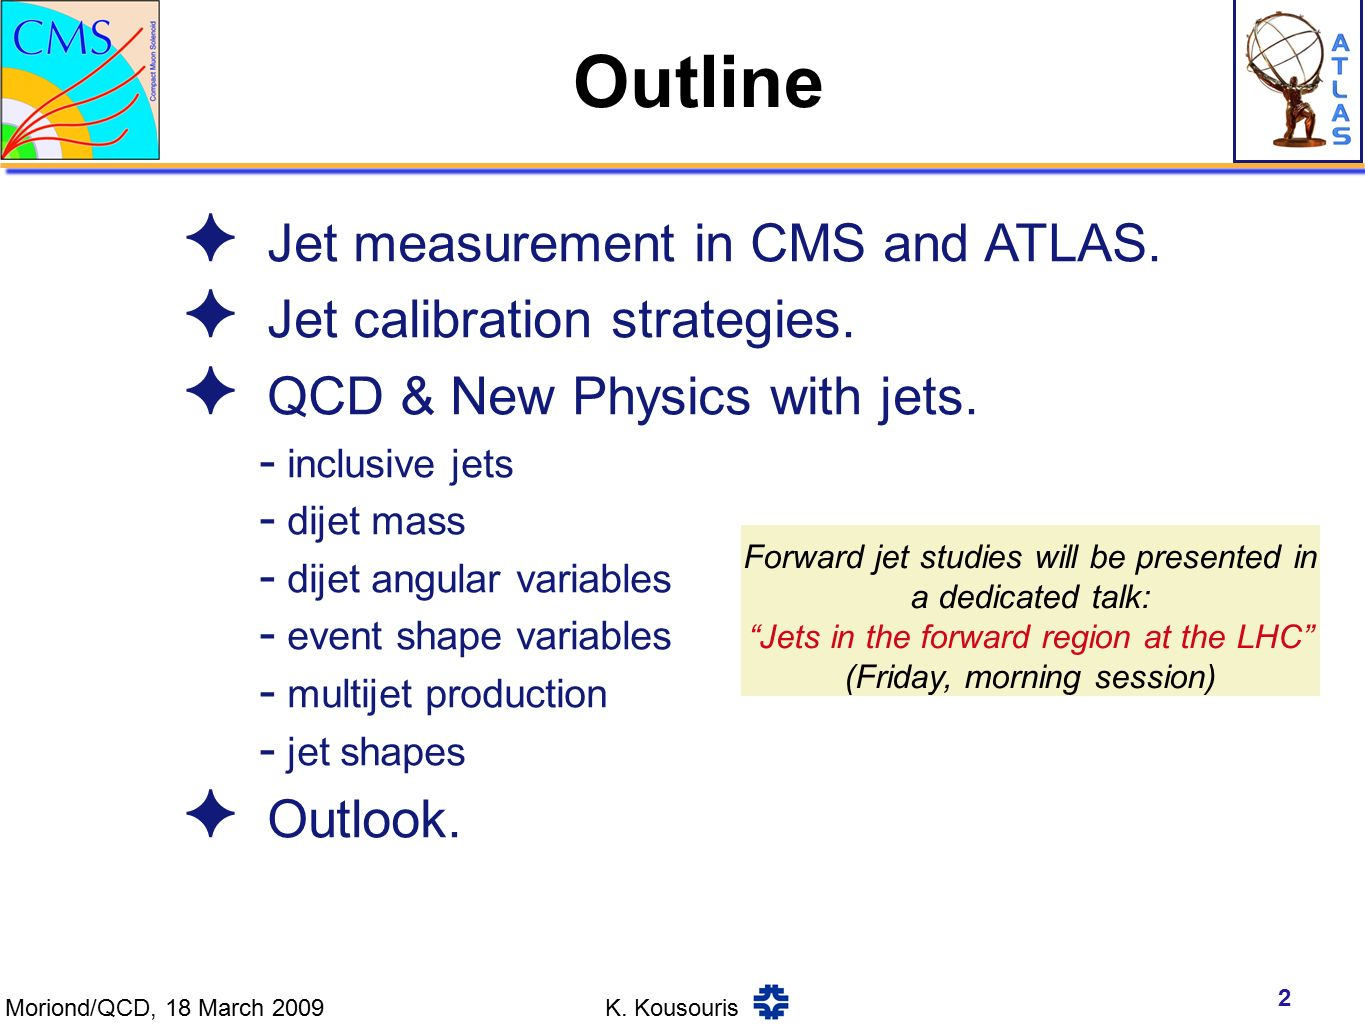 ✦ Jet measurement in CMS and ATLAS. ✦ Jet calibration strategies.